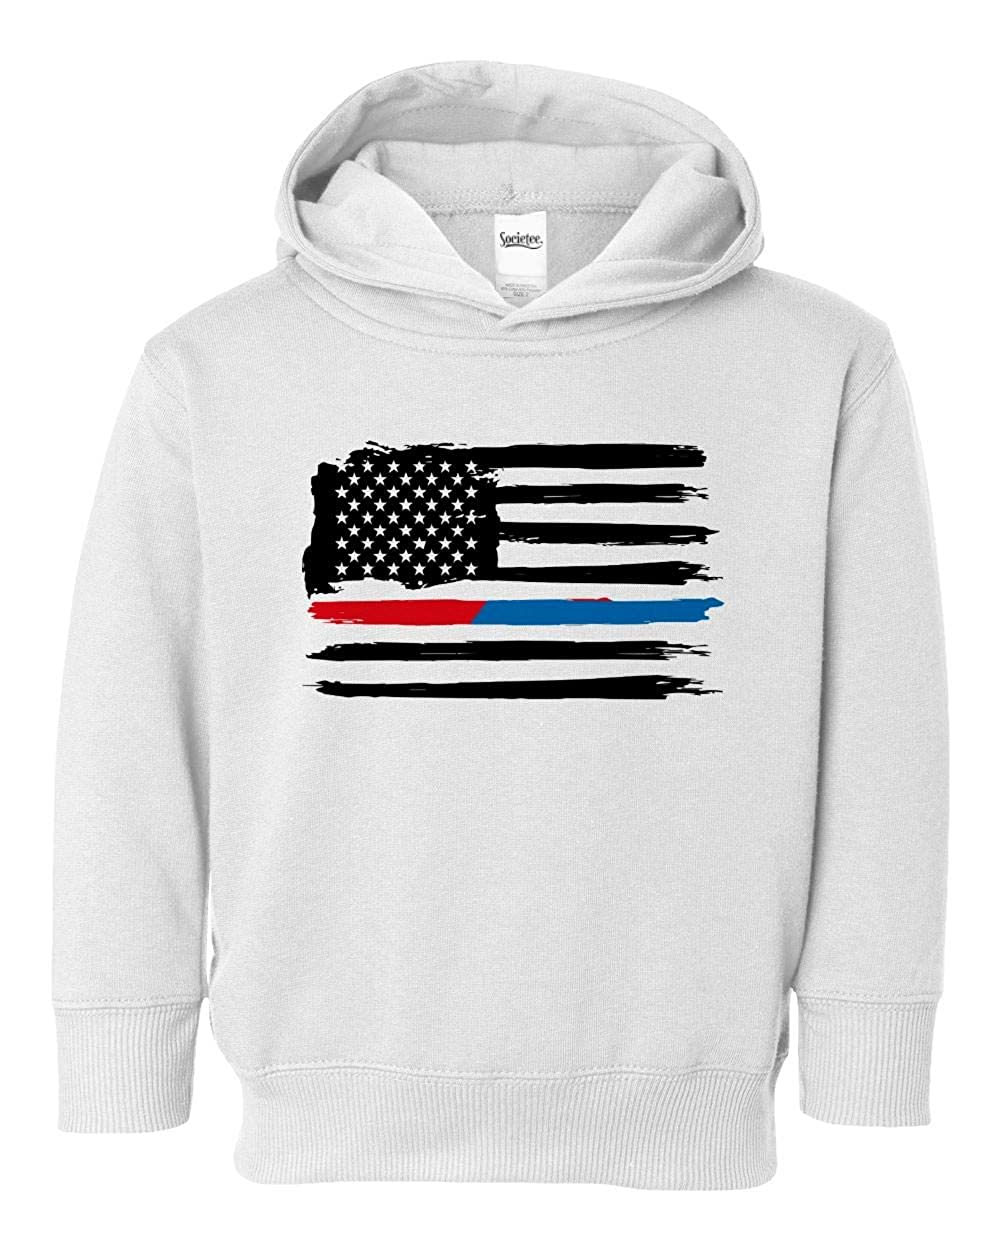 Societee Thin Red Blue Line American Flag Girls Boys Toddler Hooded Sweatshirt